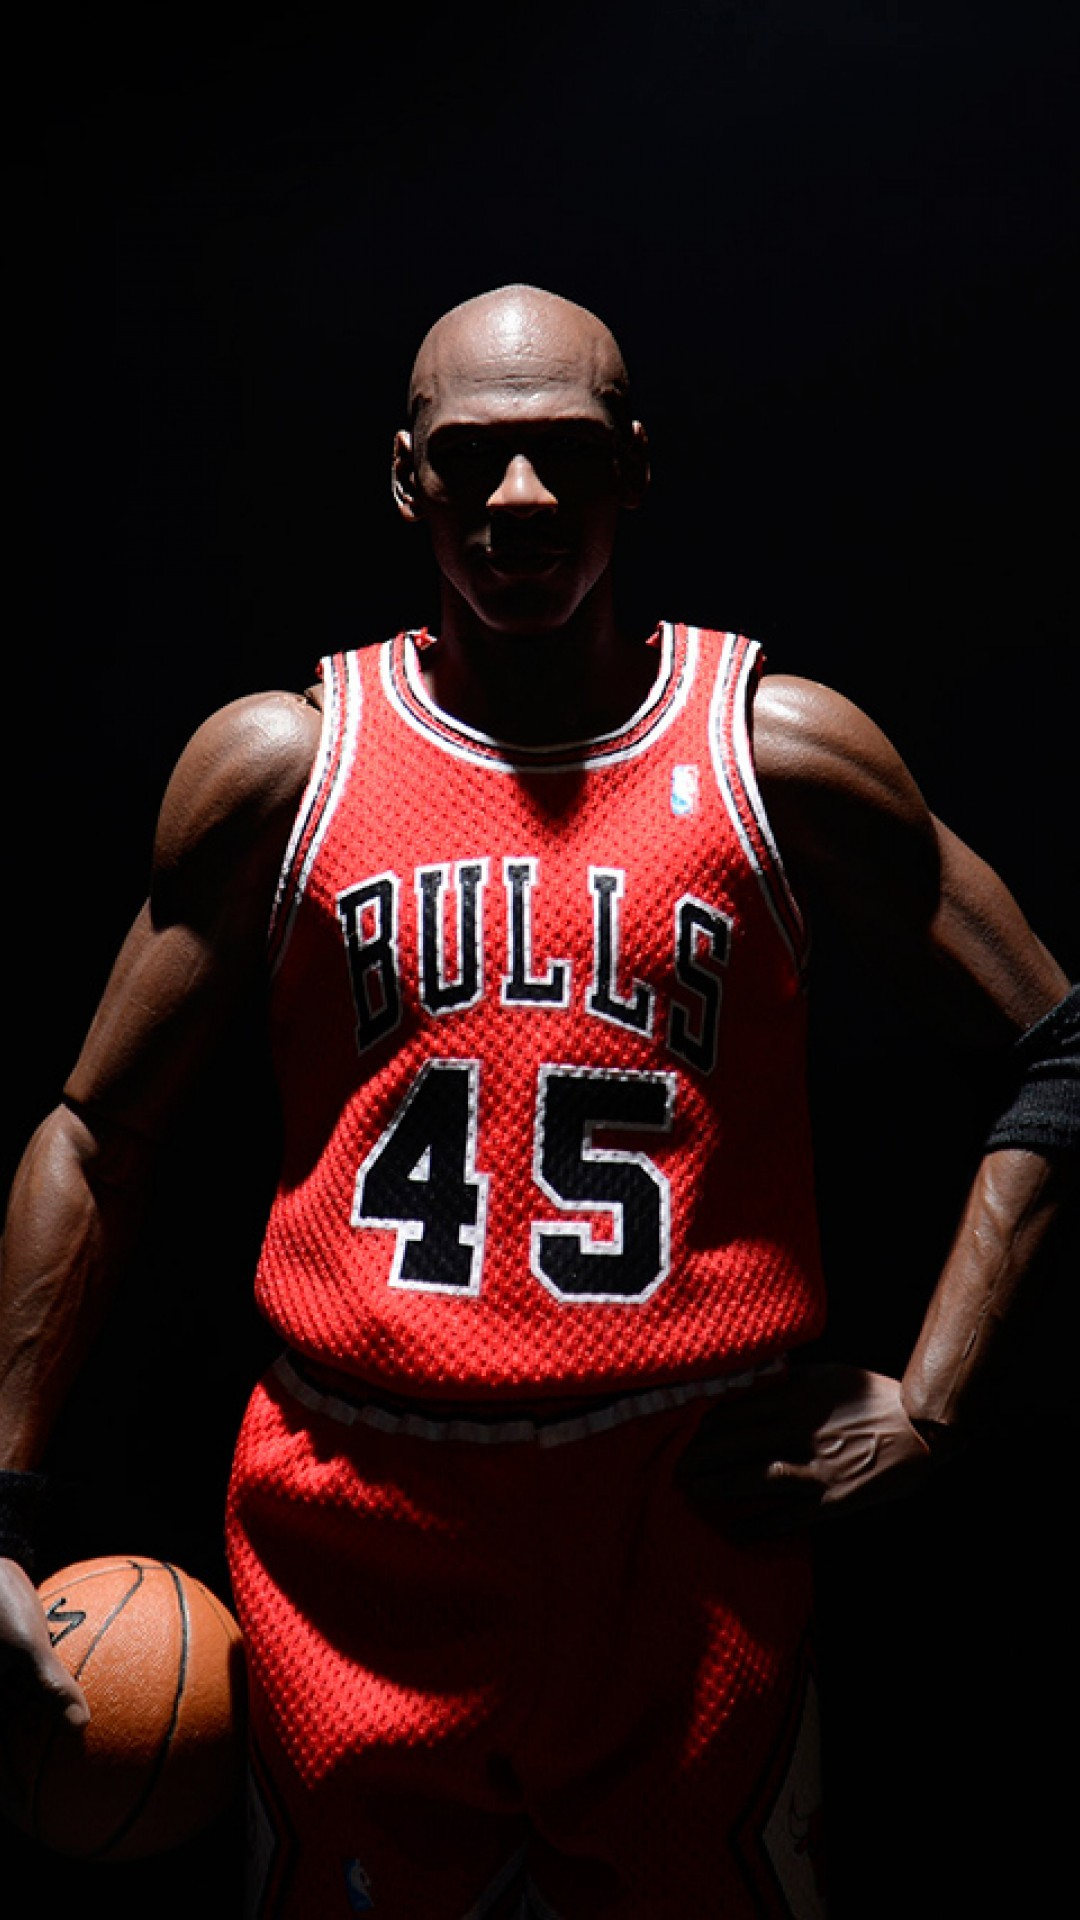 Michael Jordan Hd Wallpapers Pictures to Pin on Pinterest PinsDaddy